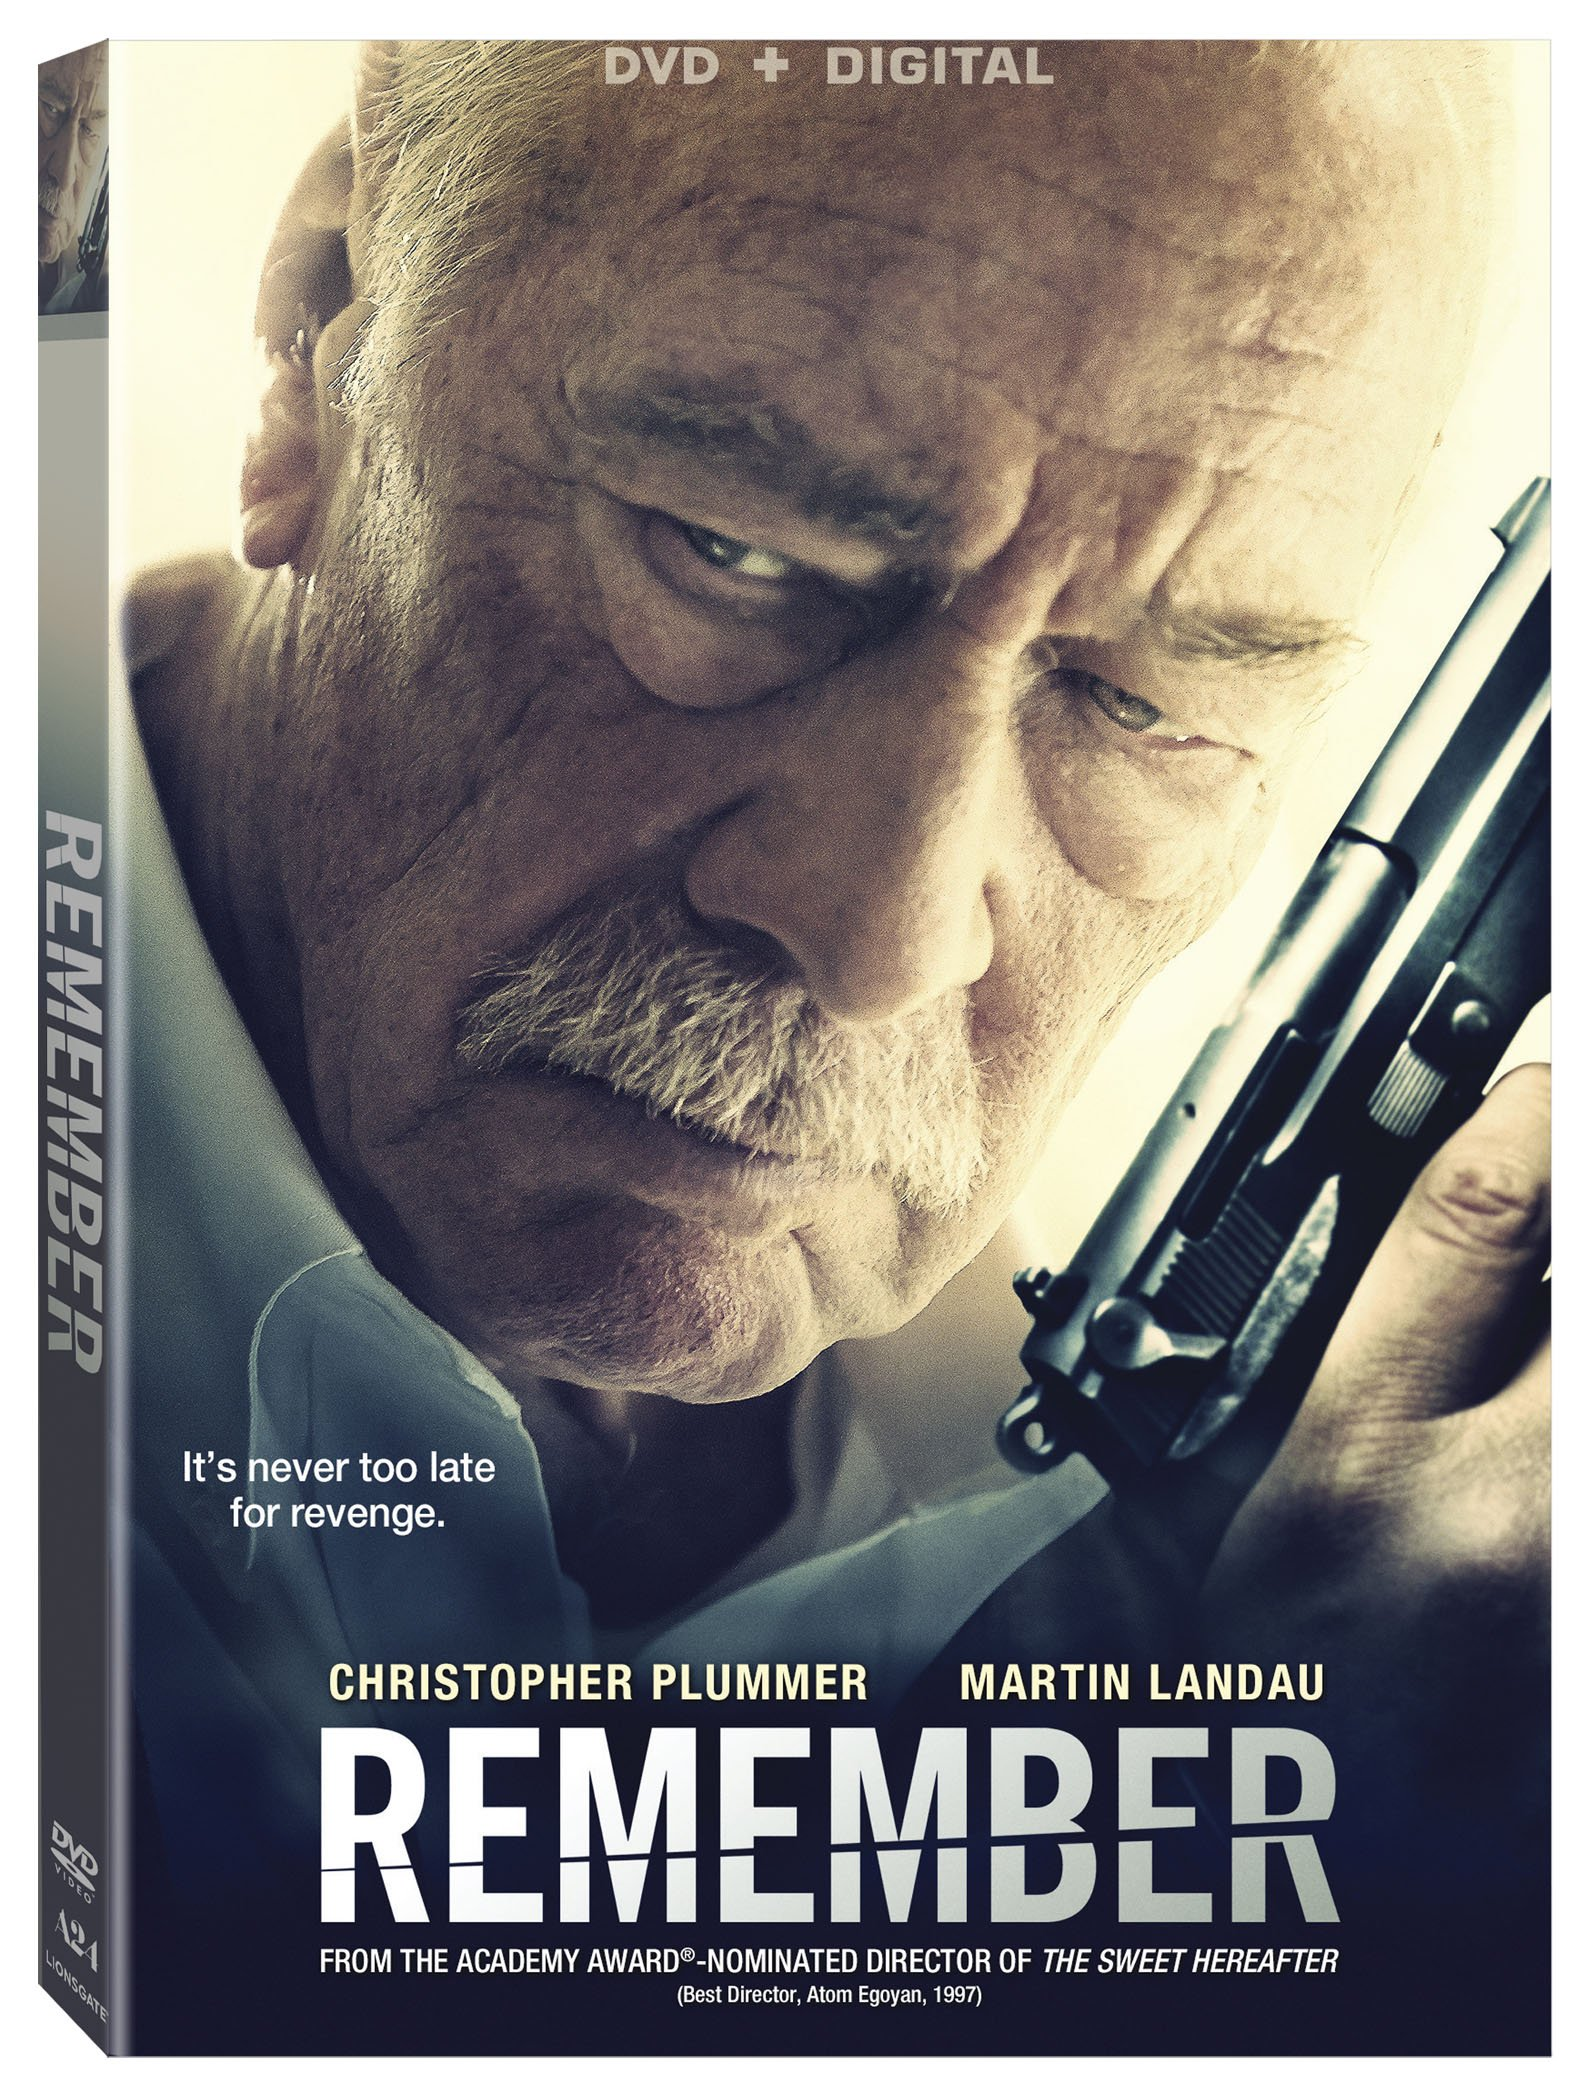 Remember [DVD + Digital]